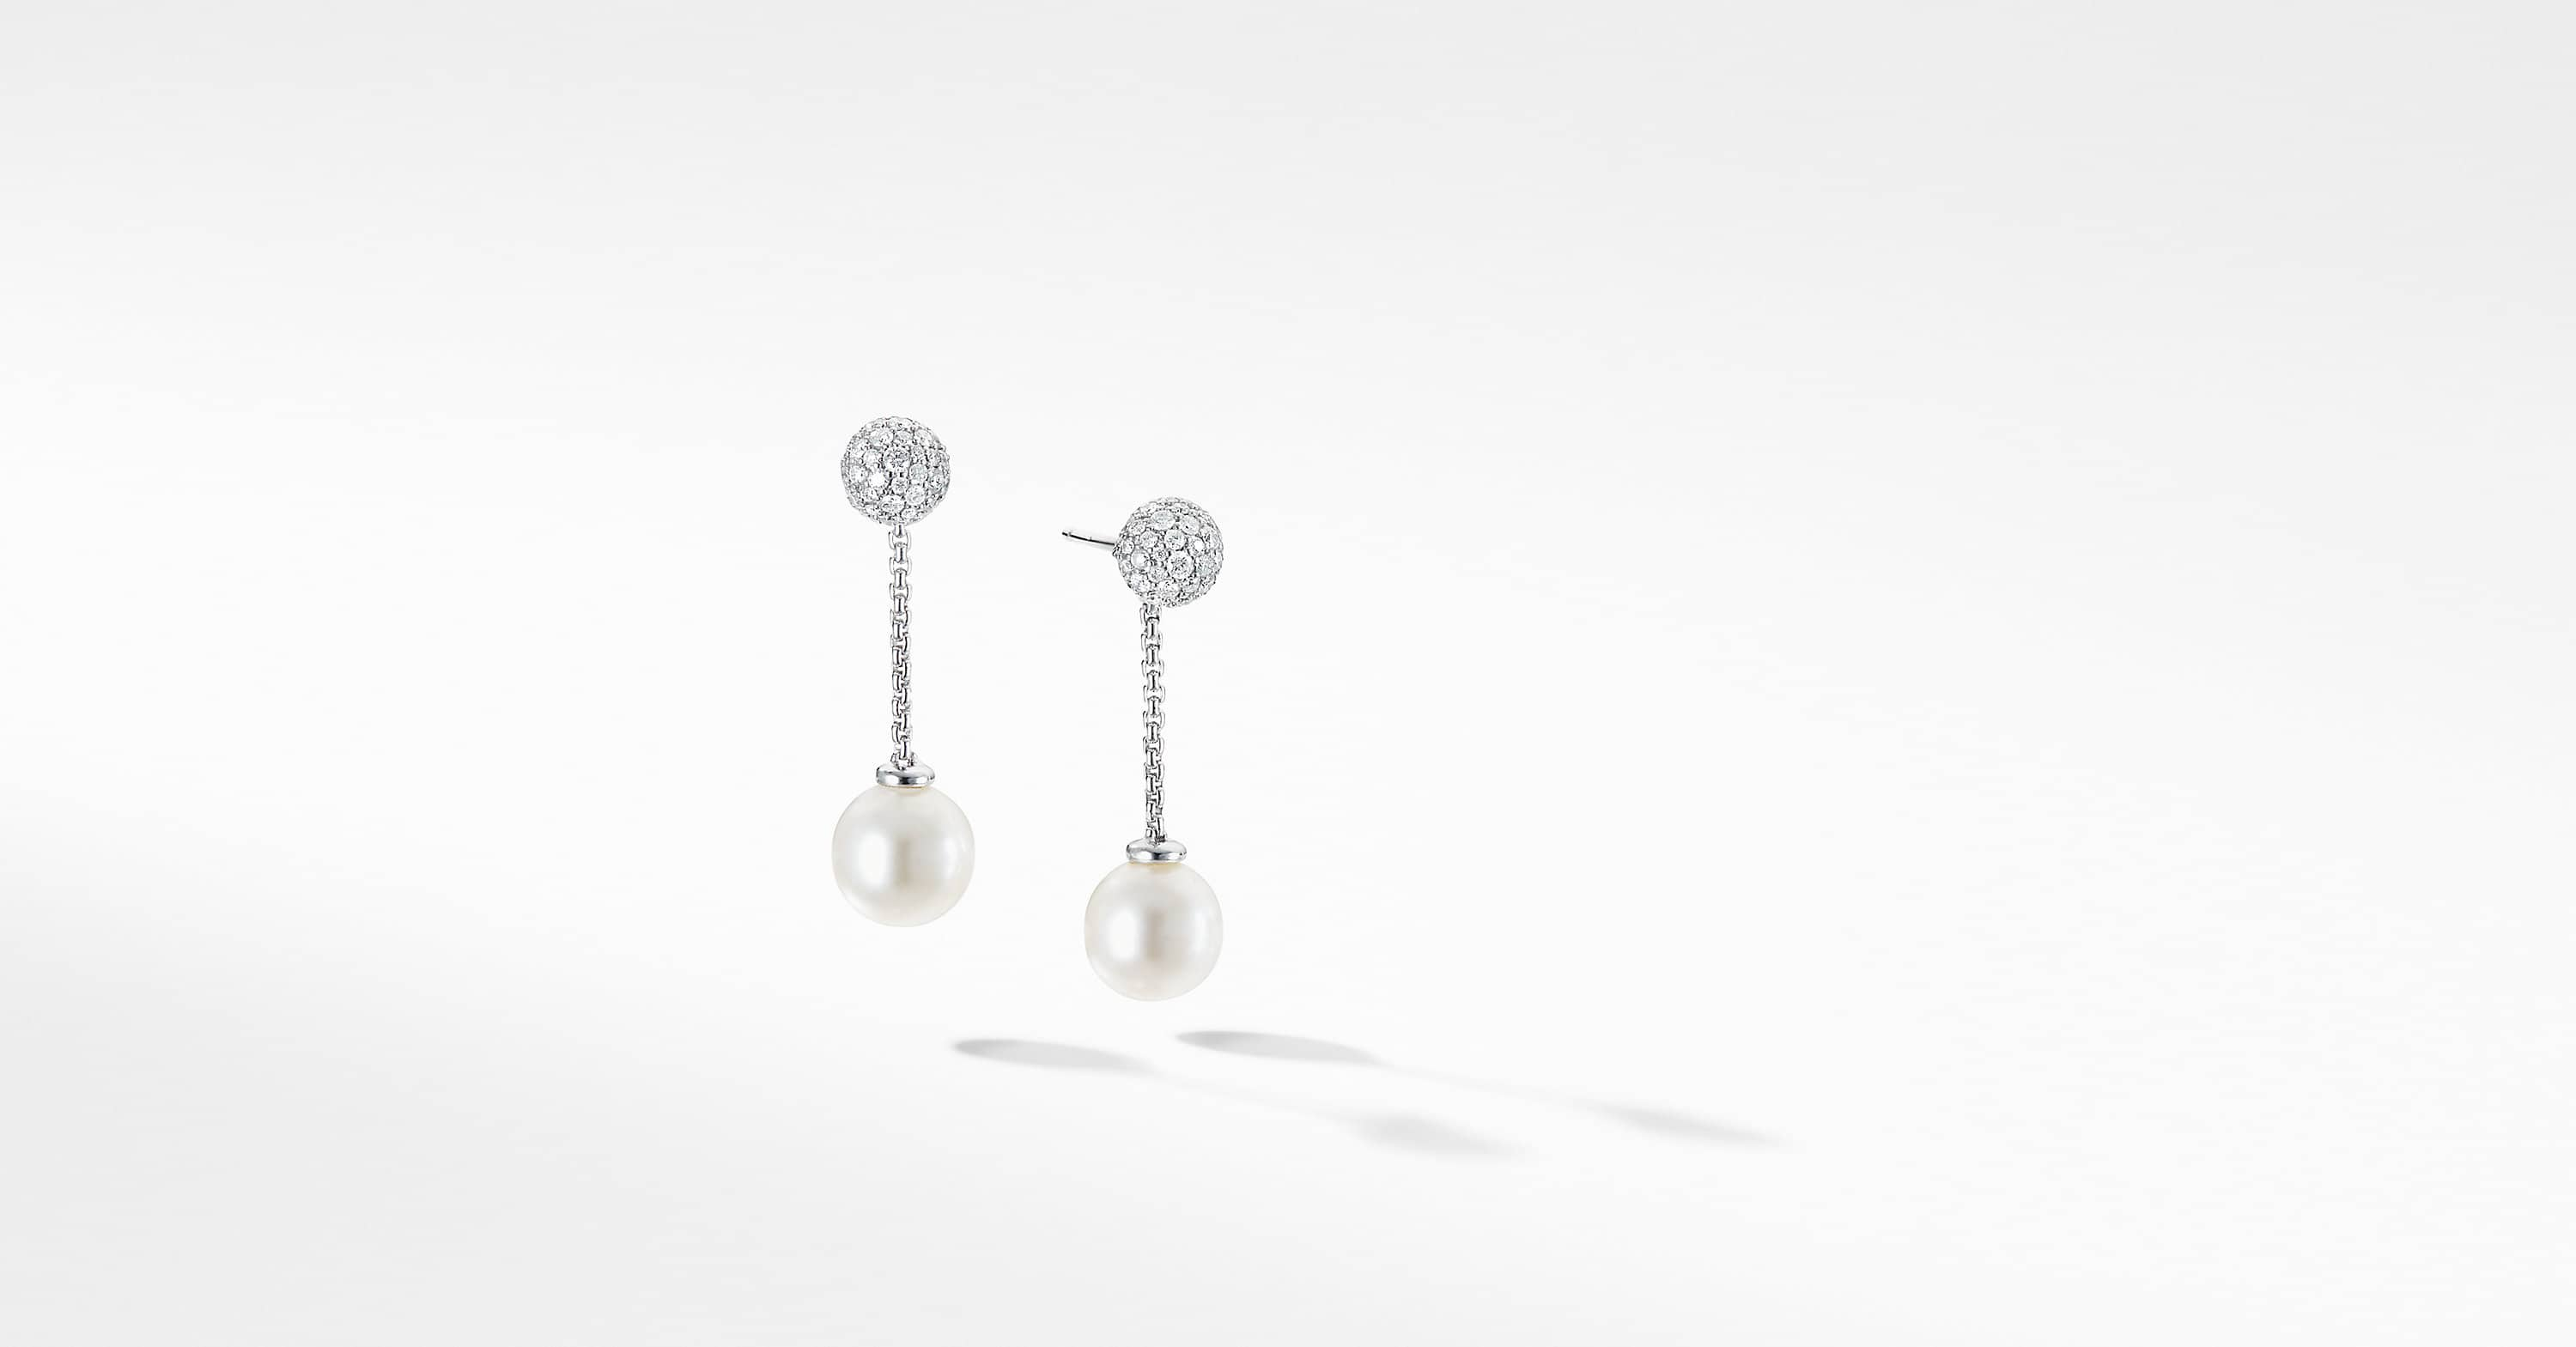 Solari Chain Drop Earring in 18K White Gold with Diamonds